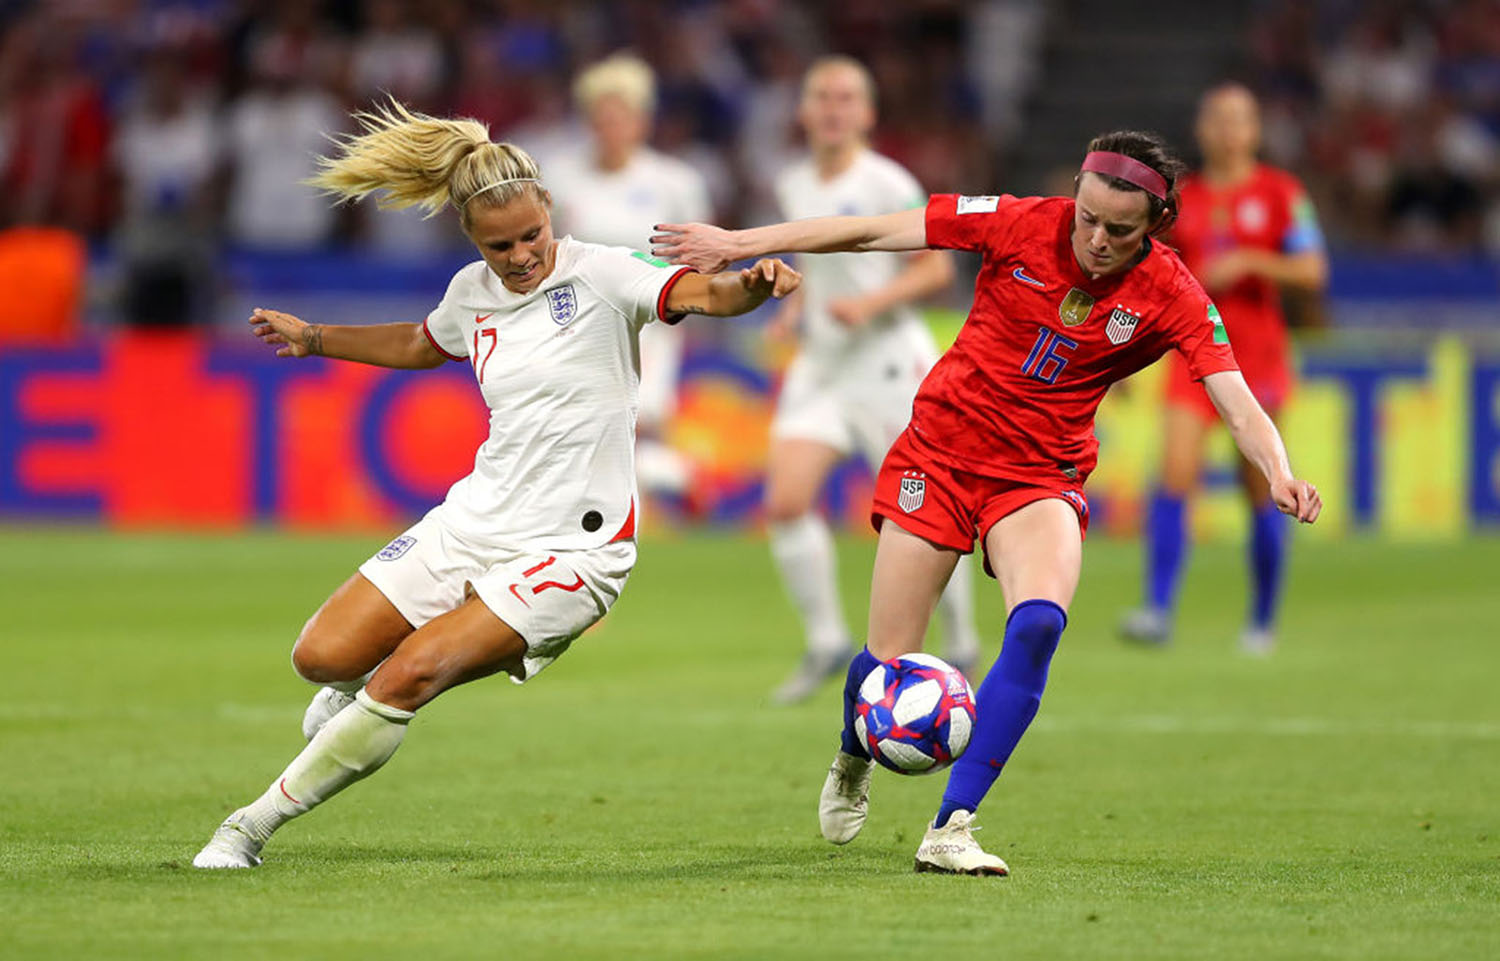 Rachel Daly of England battles for possession with Rose Lavelle of the USA during the 2019 FIFA Women's World Cup France Semi Final match between England and USA at Stade de Lyon on July 02, 2019 in Lyon, France. (Richard Heathcote/Getty Images/TNS)